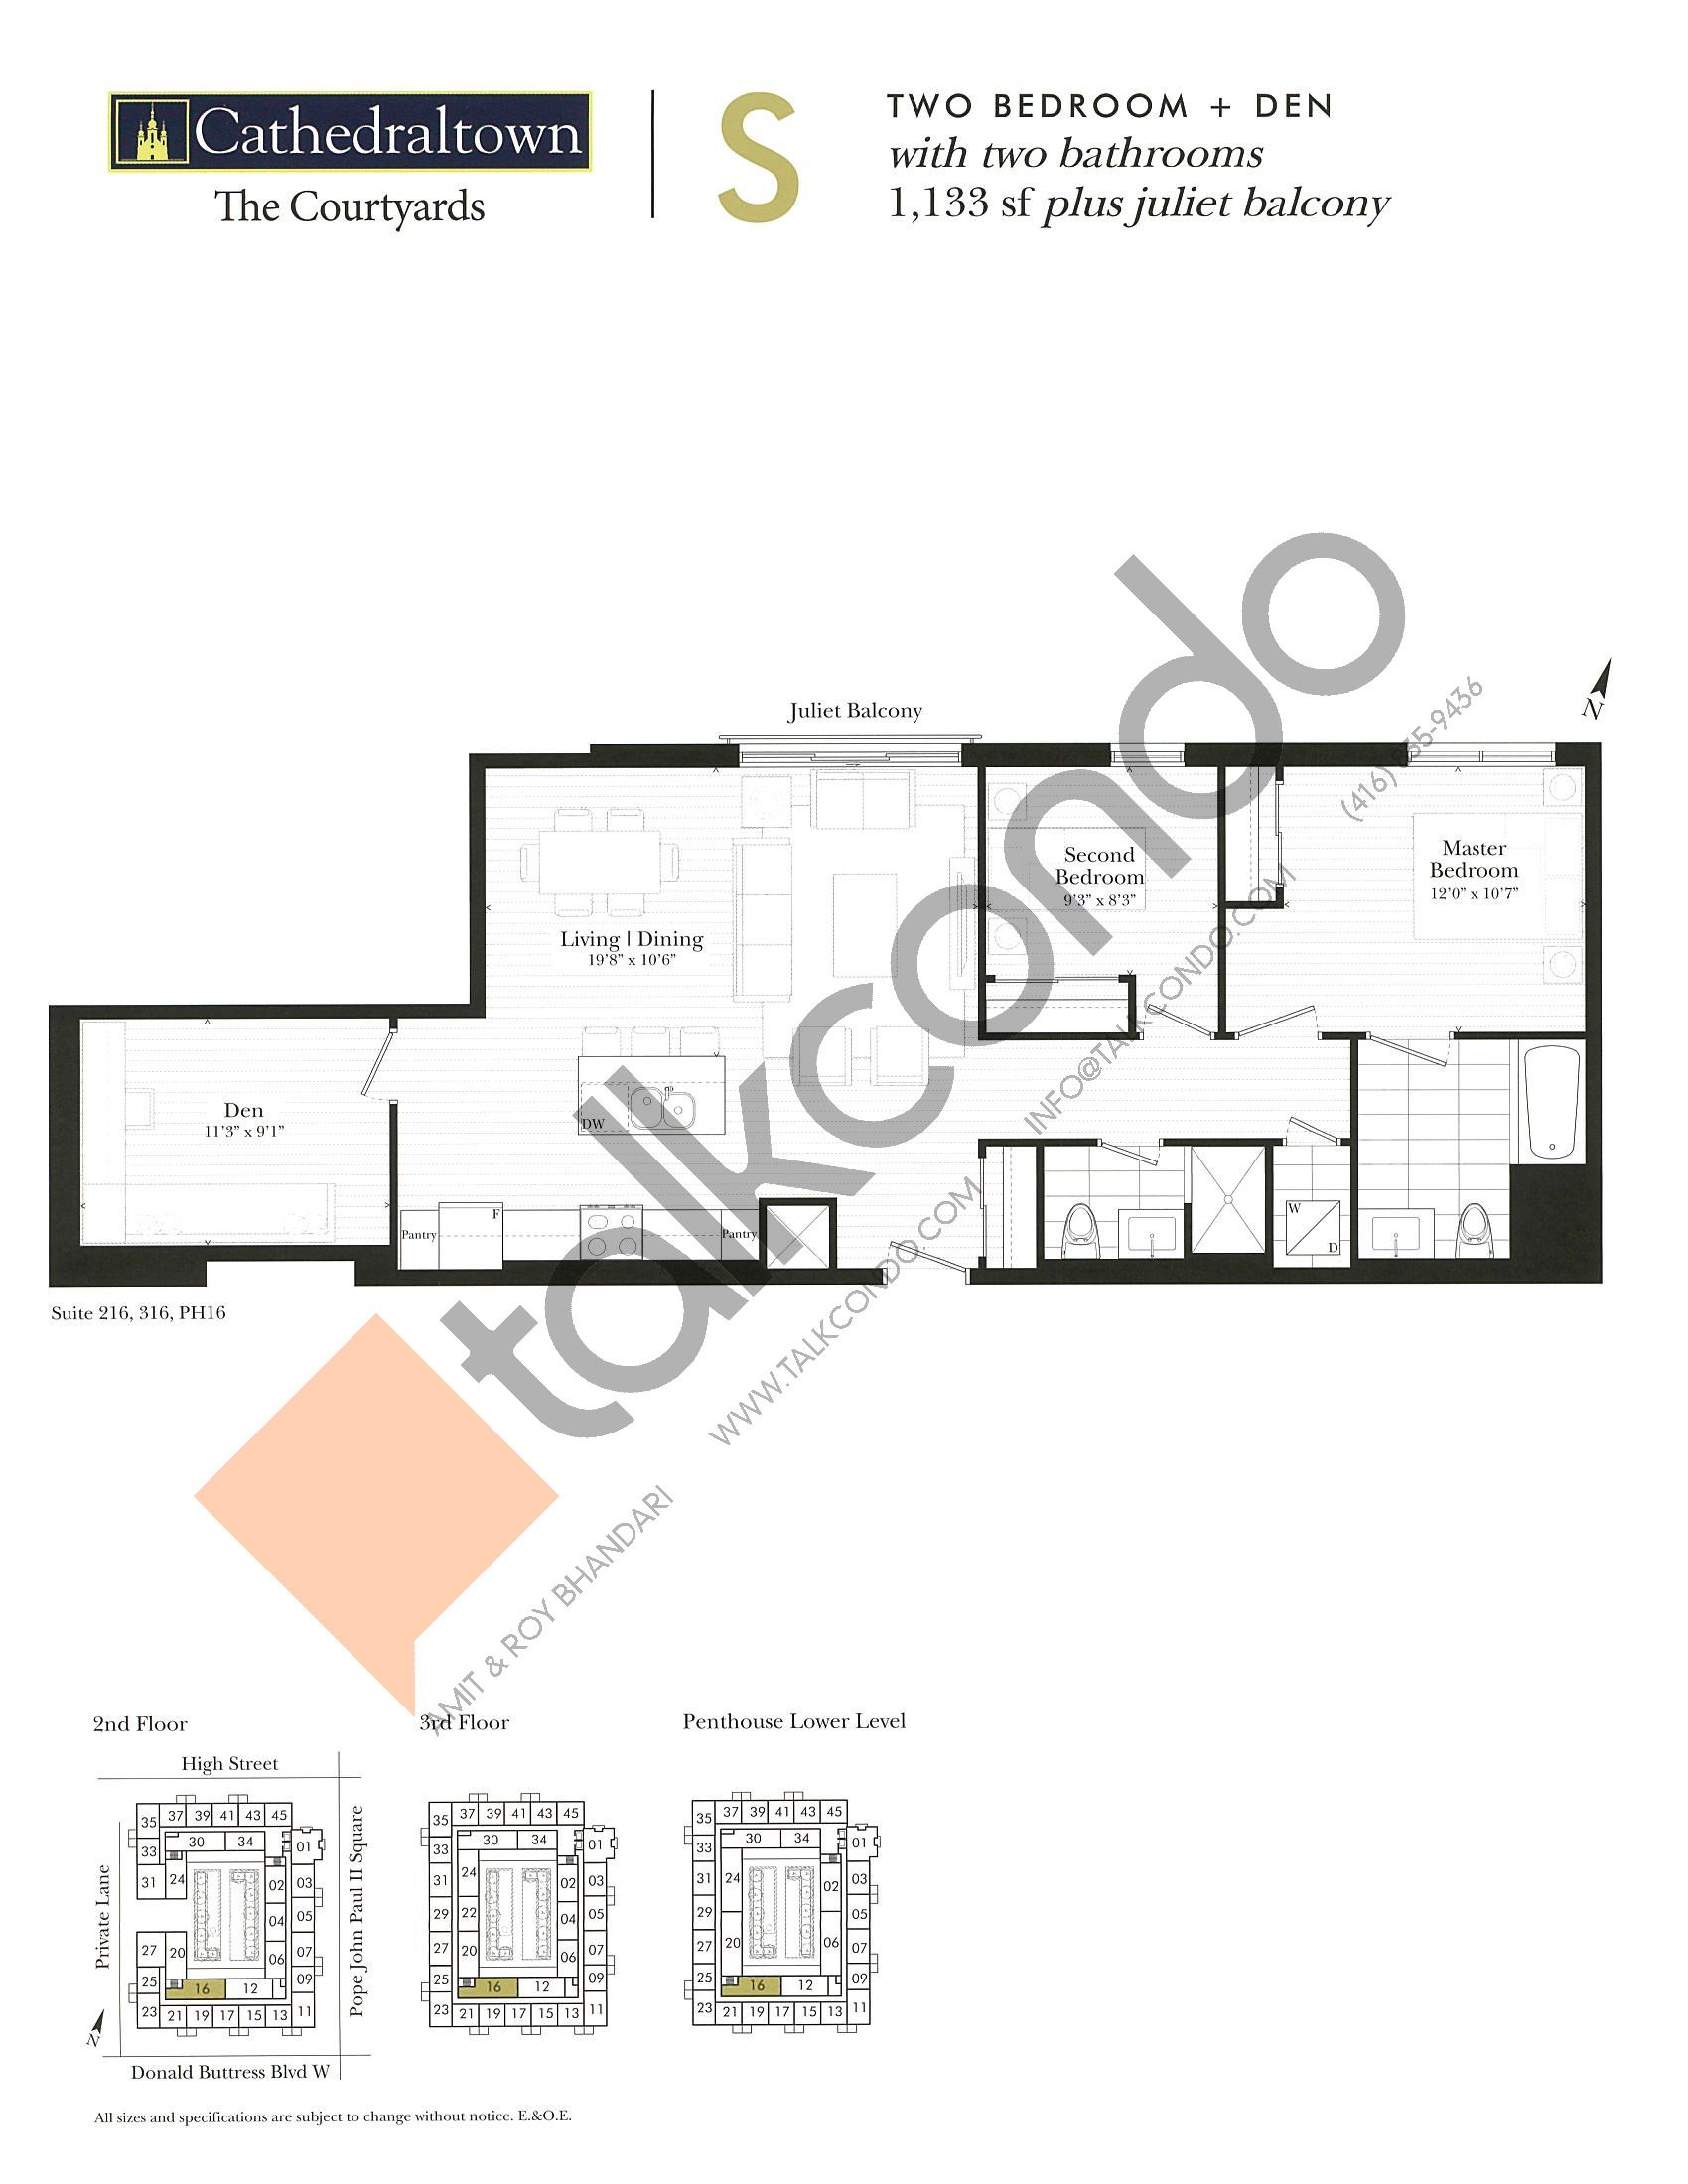 Unit S Floor Plan at The Courtyards at Cathedraltown Condos - 1133 sq.ft